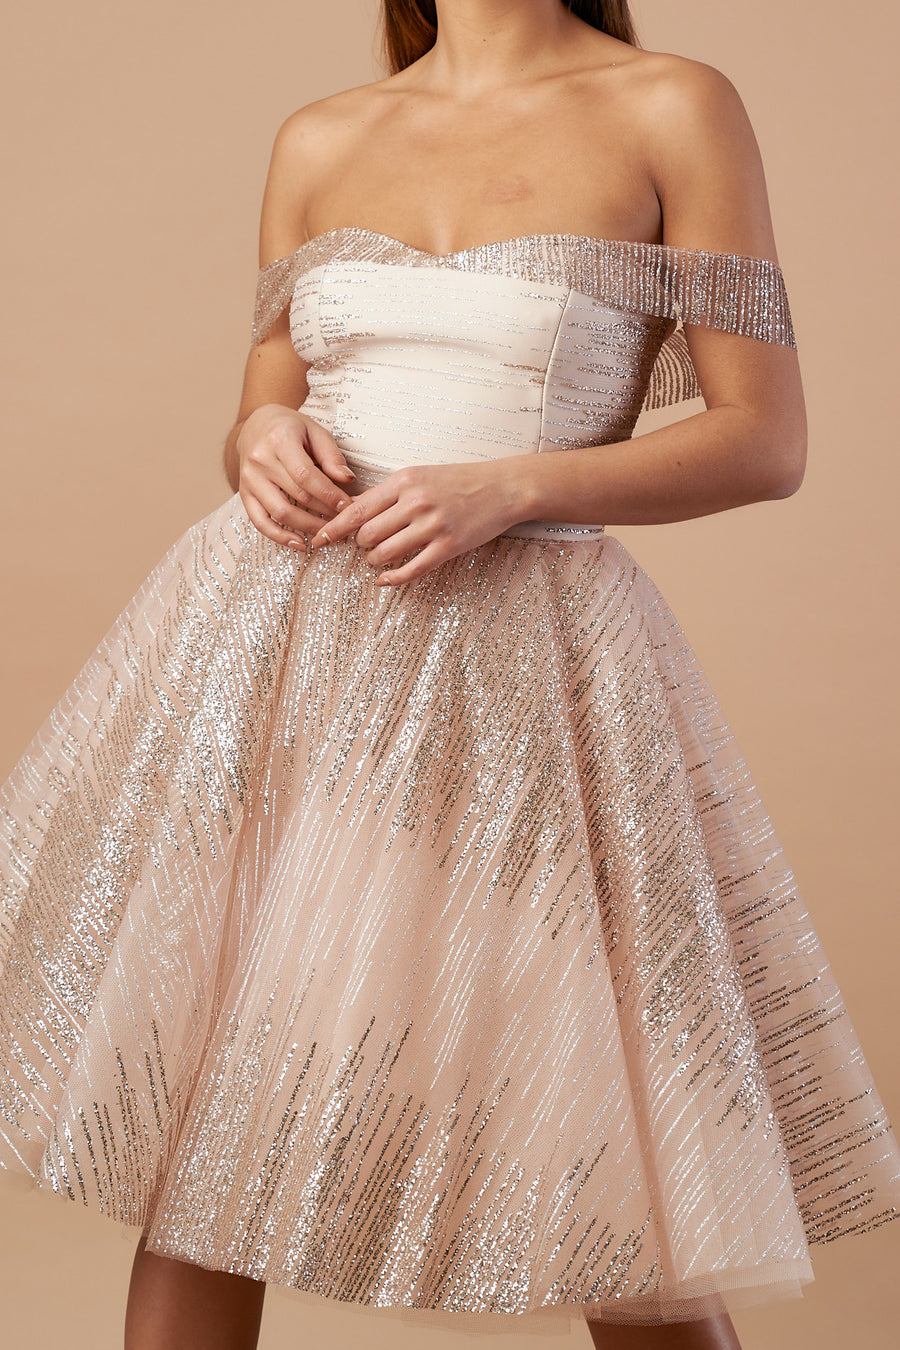 Nude Bardot Glittery Tulle Dress